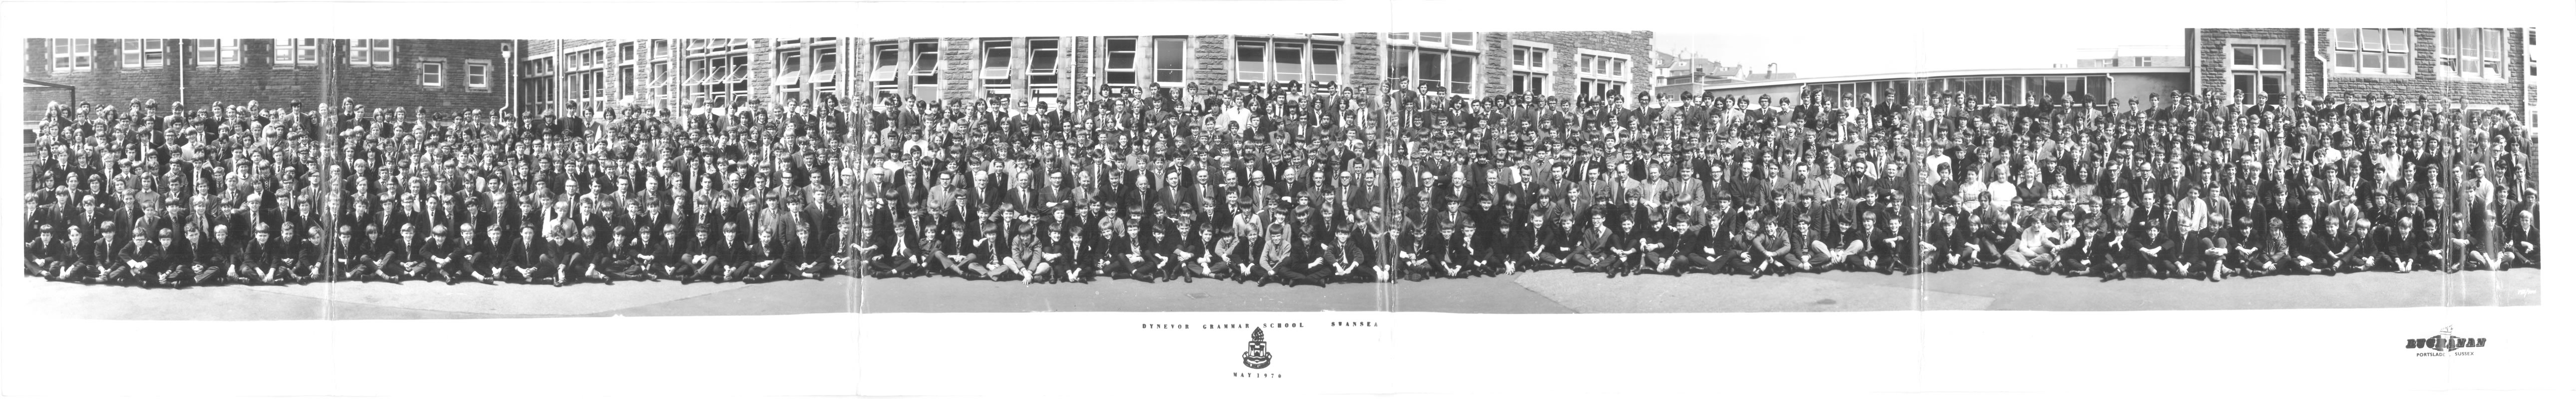 1970 School Photo panorama